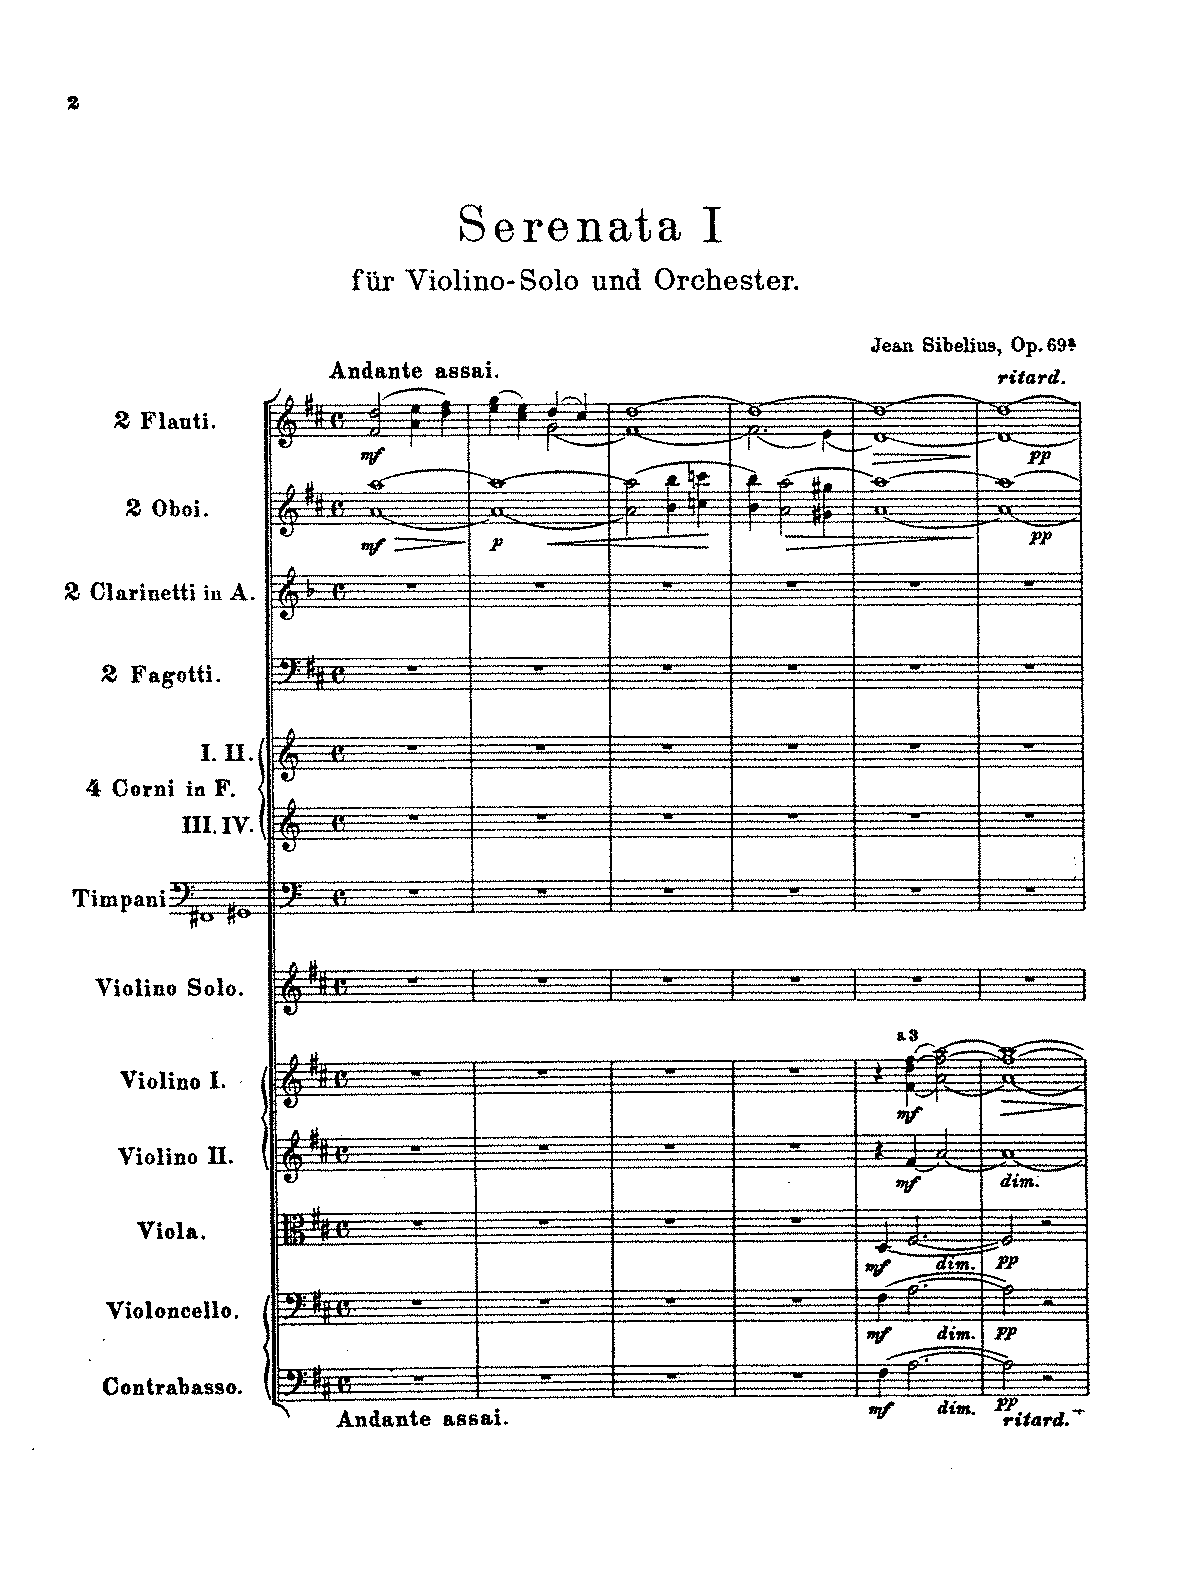 Sibelius - 2 Serenades for Violin and Orchestra, Op.69 (orch. score).pdf